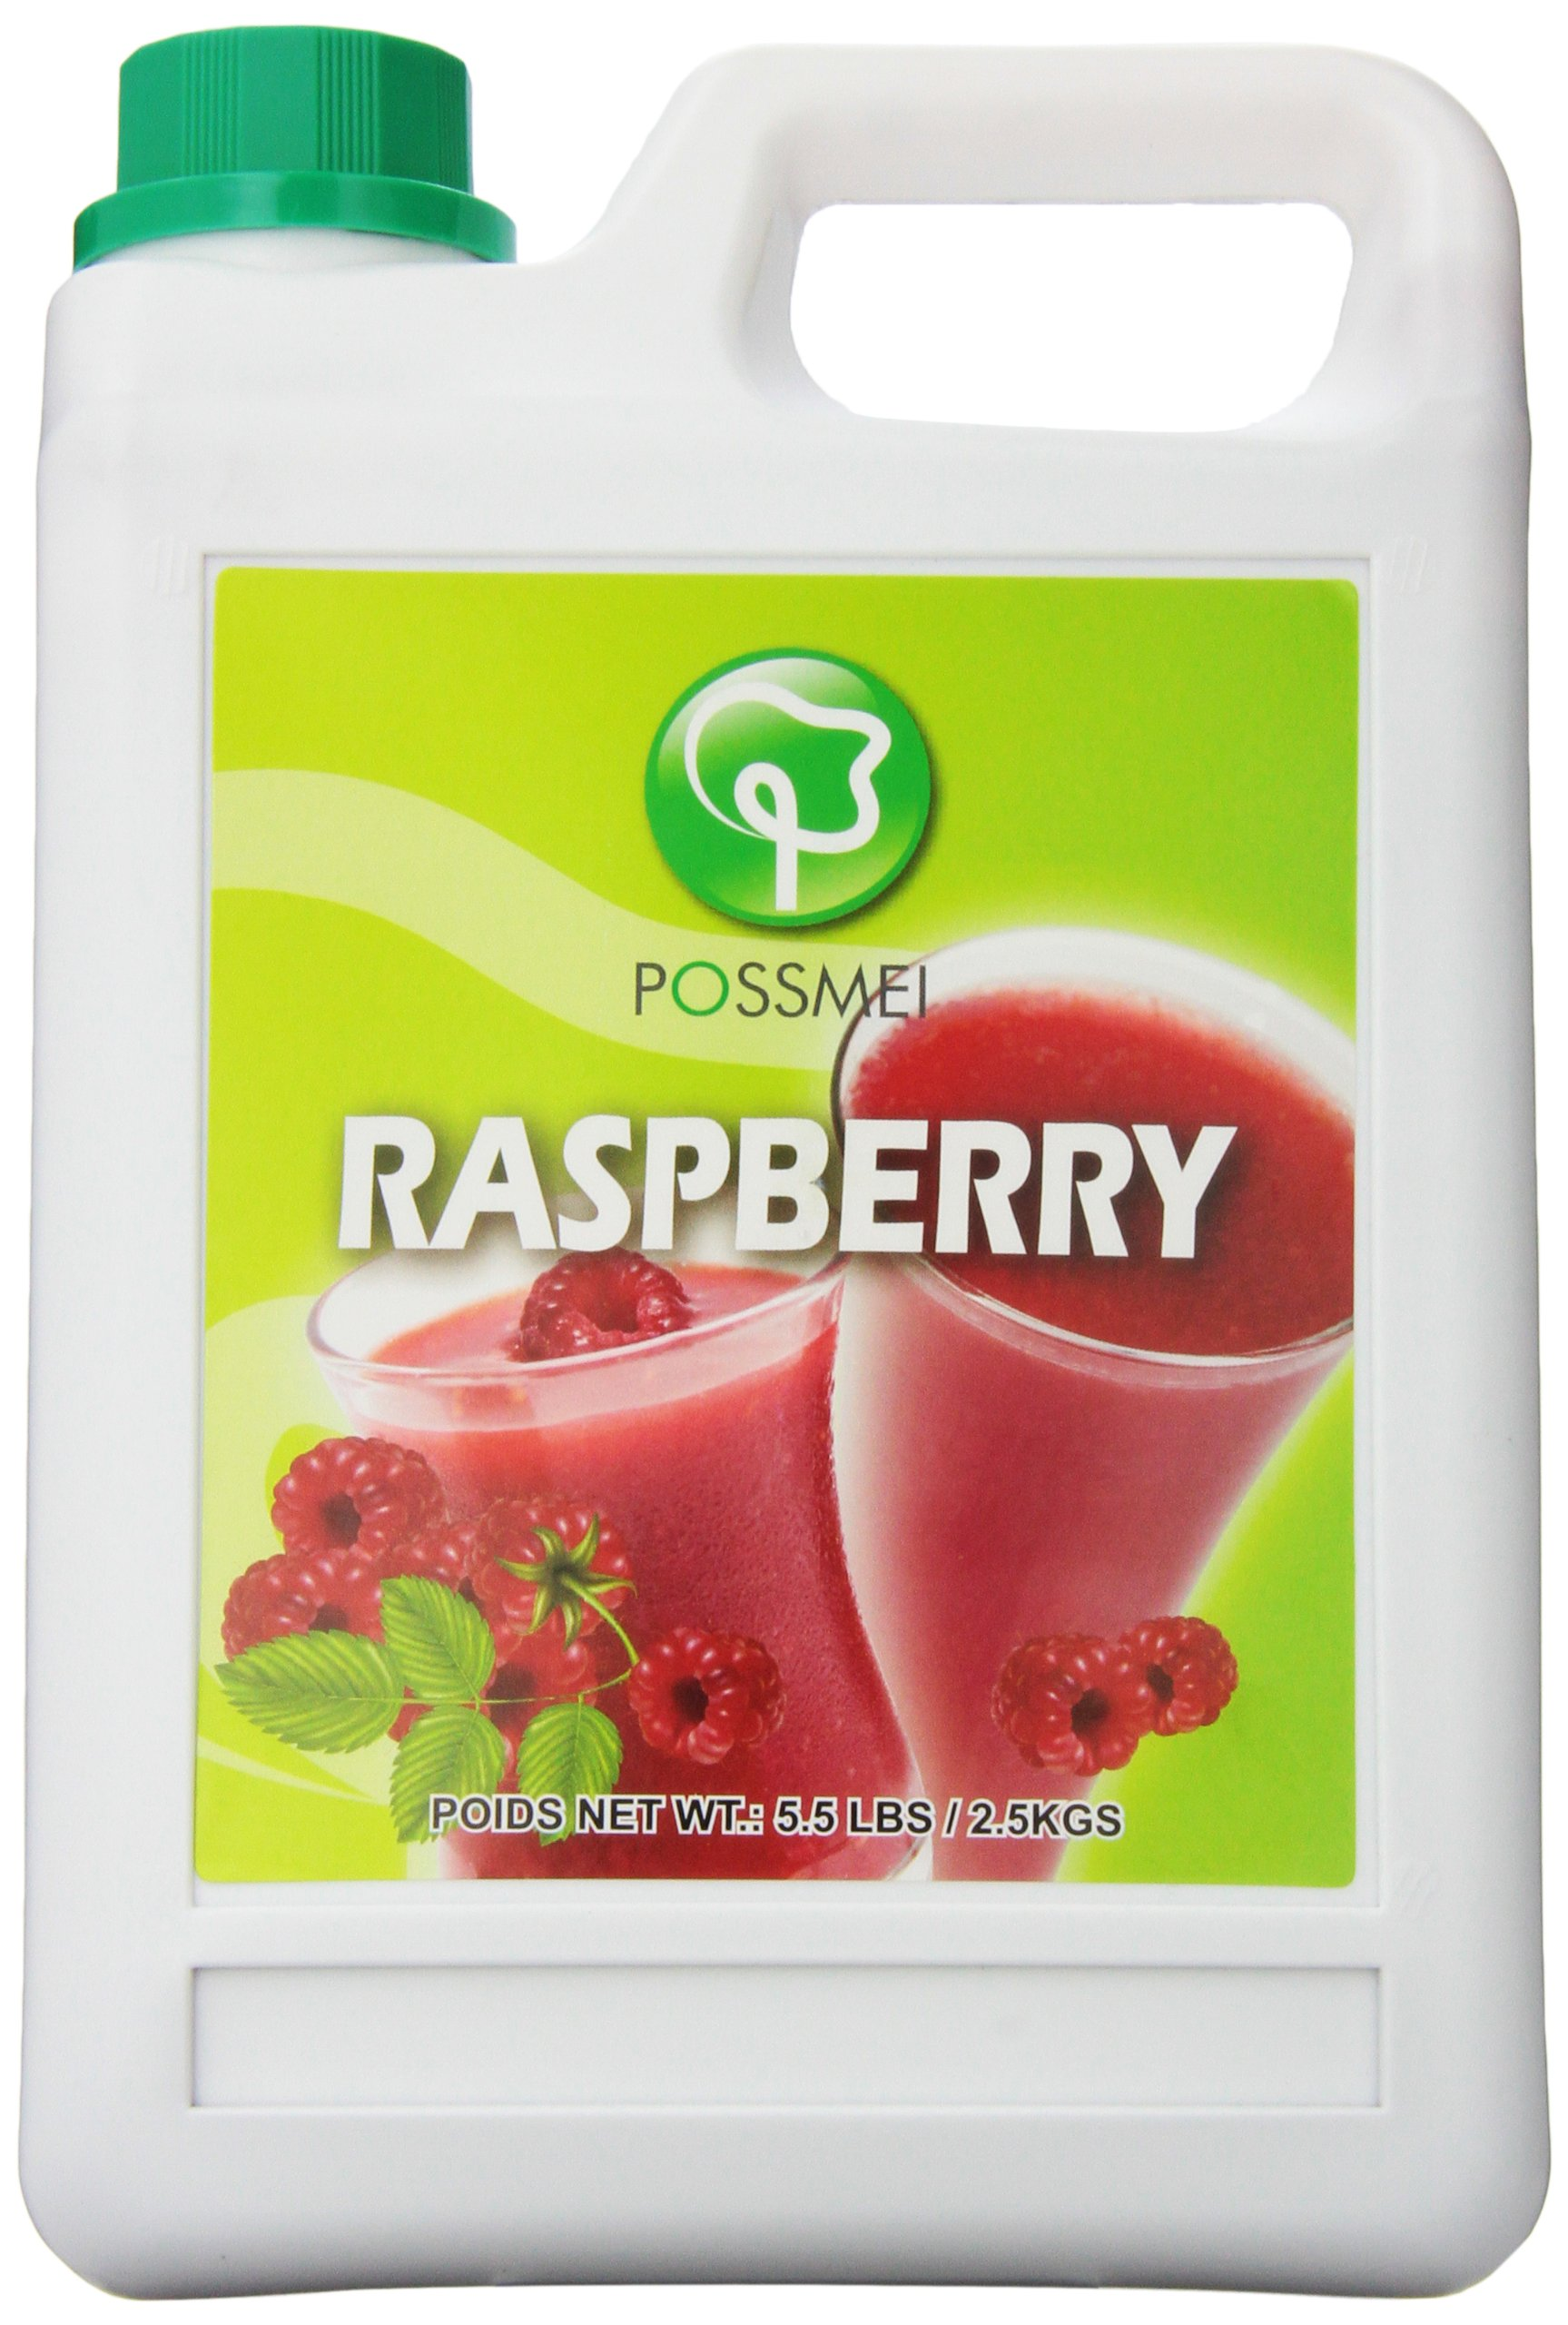 Possmei Flavored Syrup,  Raspberry, 5.5 Pound by Possmei